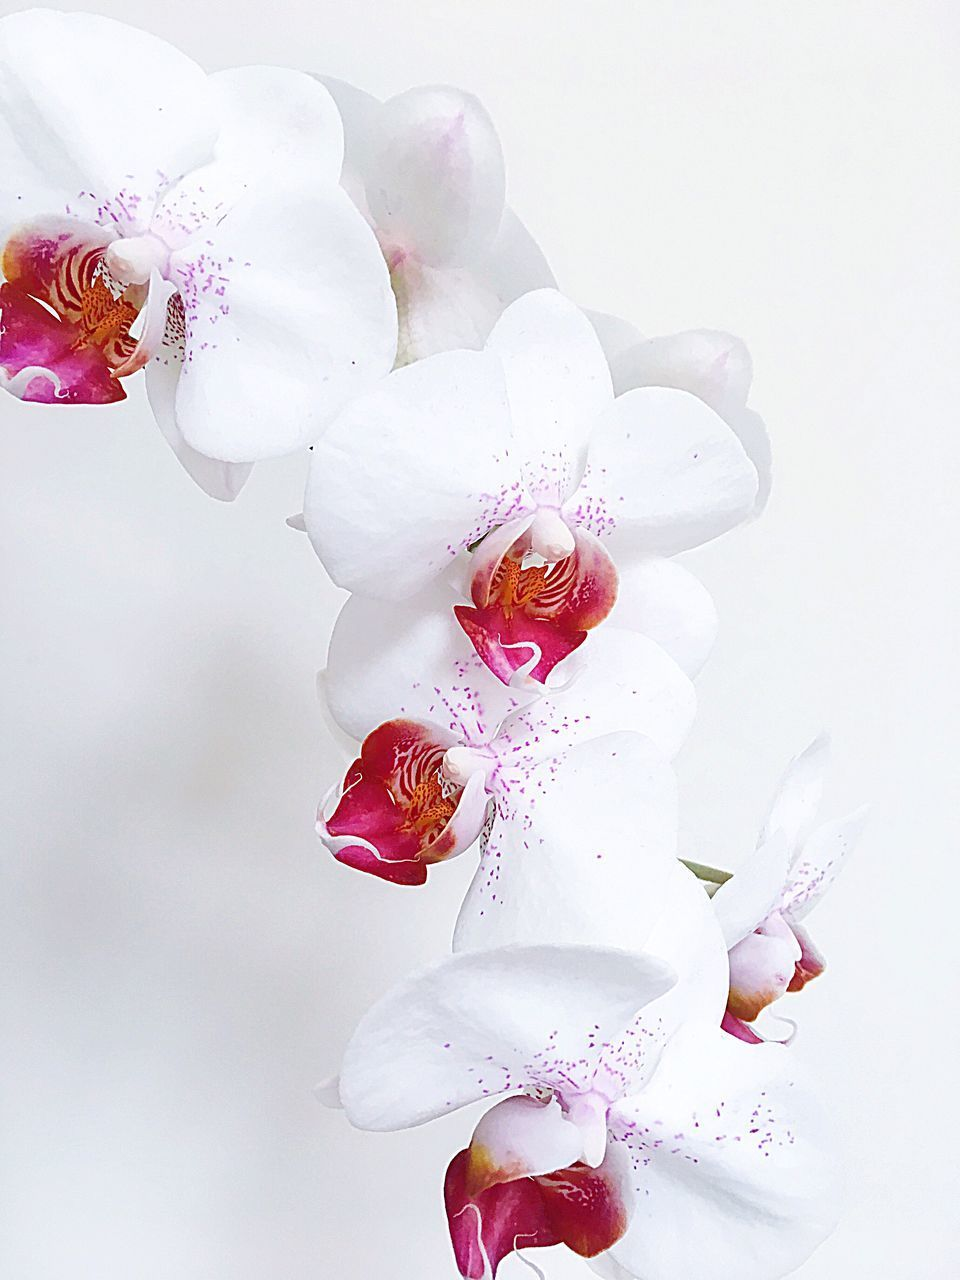 flowering plant, flower, fragility, plant, vulnerability, beauty in nature, freshness, petal, inflorescence, flower head, close-up, white background, studio shot, nature, no people, pollen, white color, growth, indoors, orchid, springtime, cherry blossom, flower arrangement